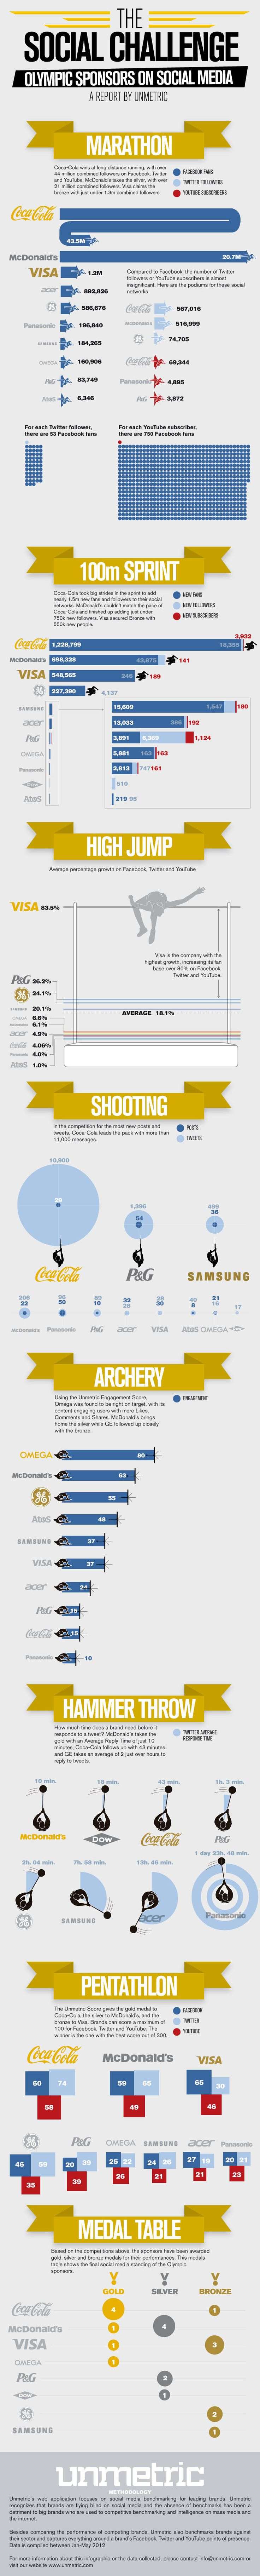 Olympic Sponsors Go For Gold Online [INFOGRAPHIC]    Unmetric, a service that tracks brands' online presence, collected data leading up to the Games to see how sponsors stacked up against each other.